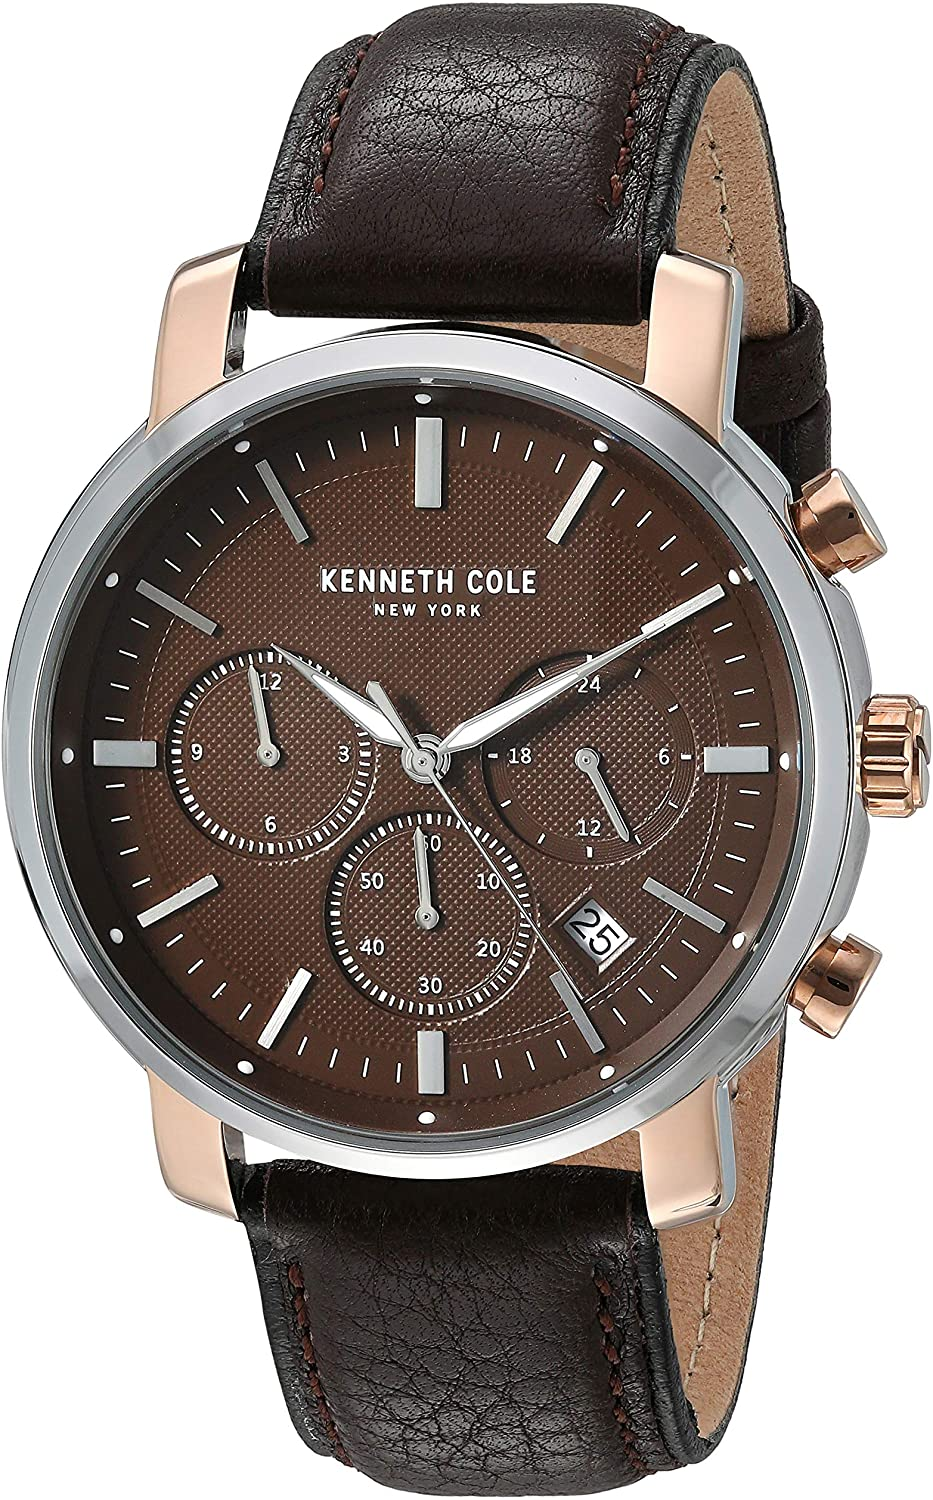 Kenneth Cole New York - KC50775003 - Stainless Steel Wrist Watch for Men